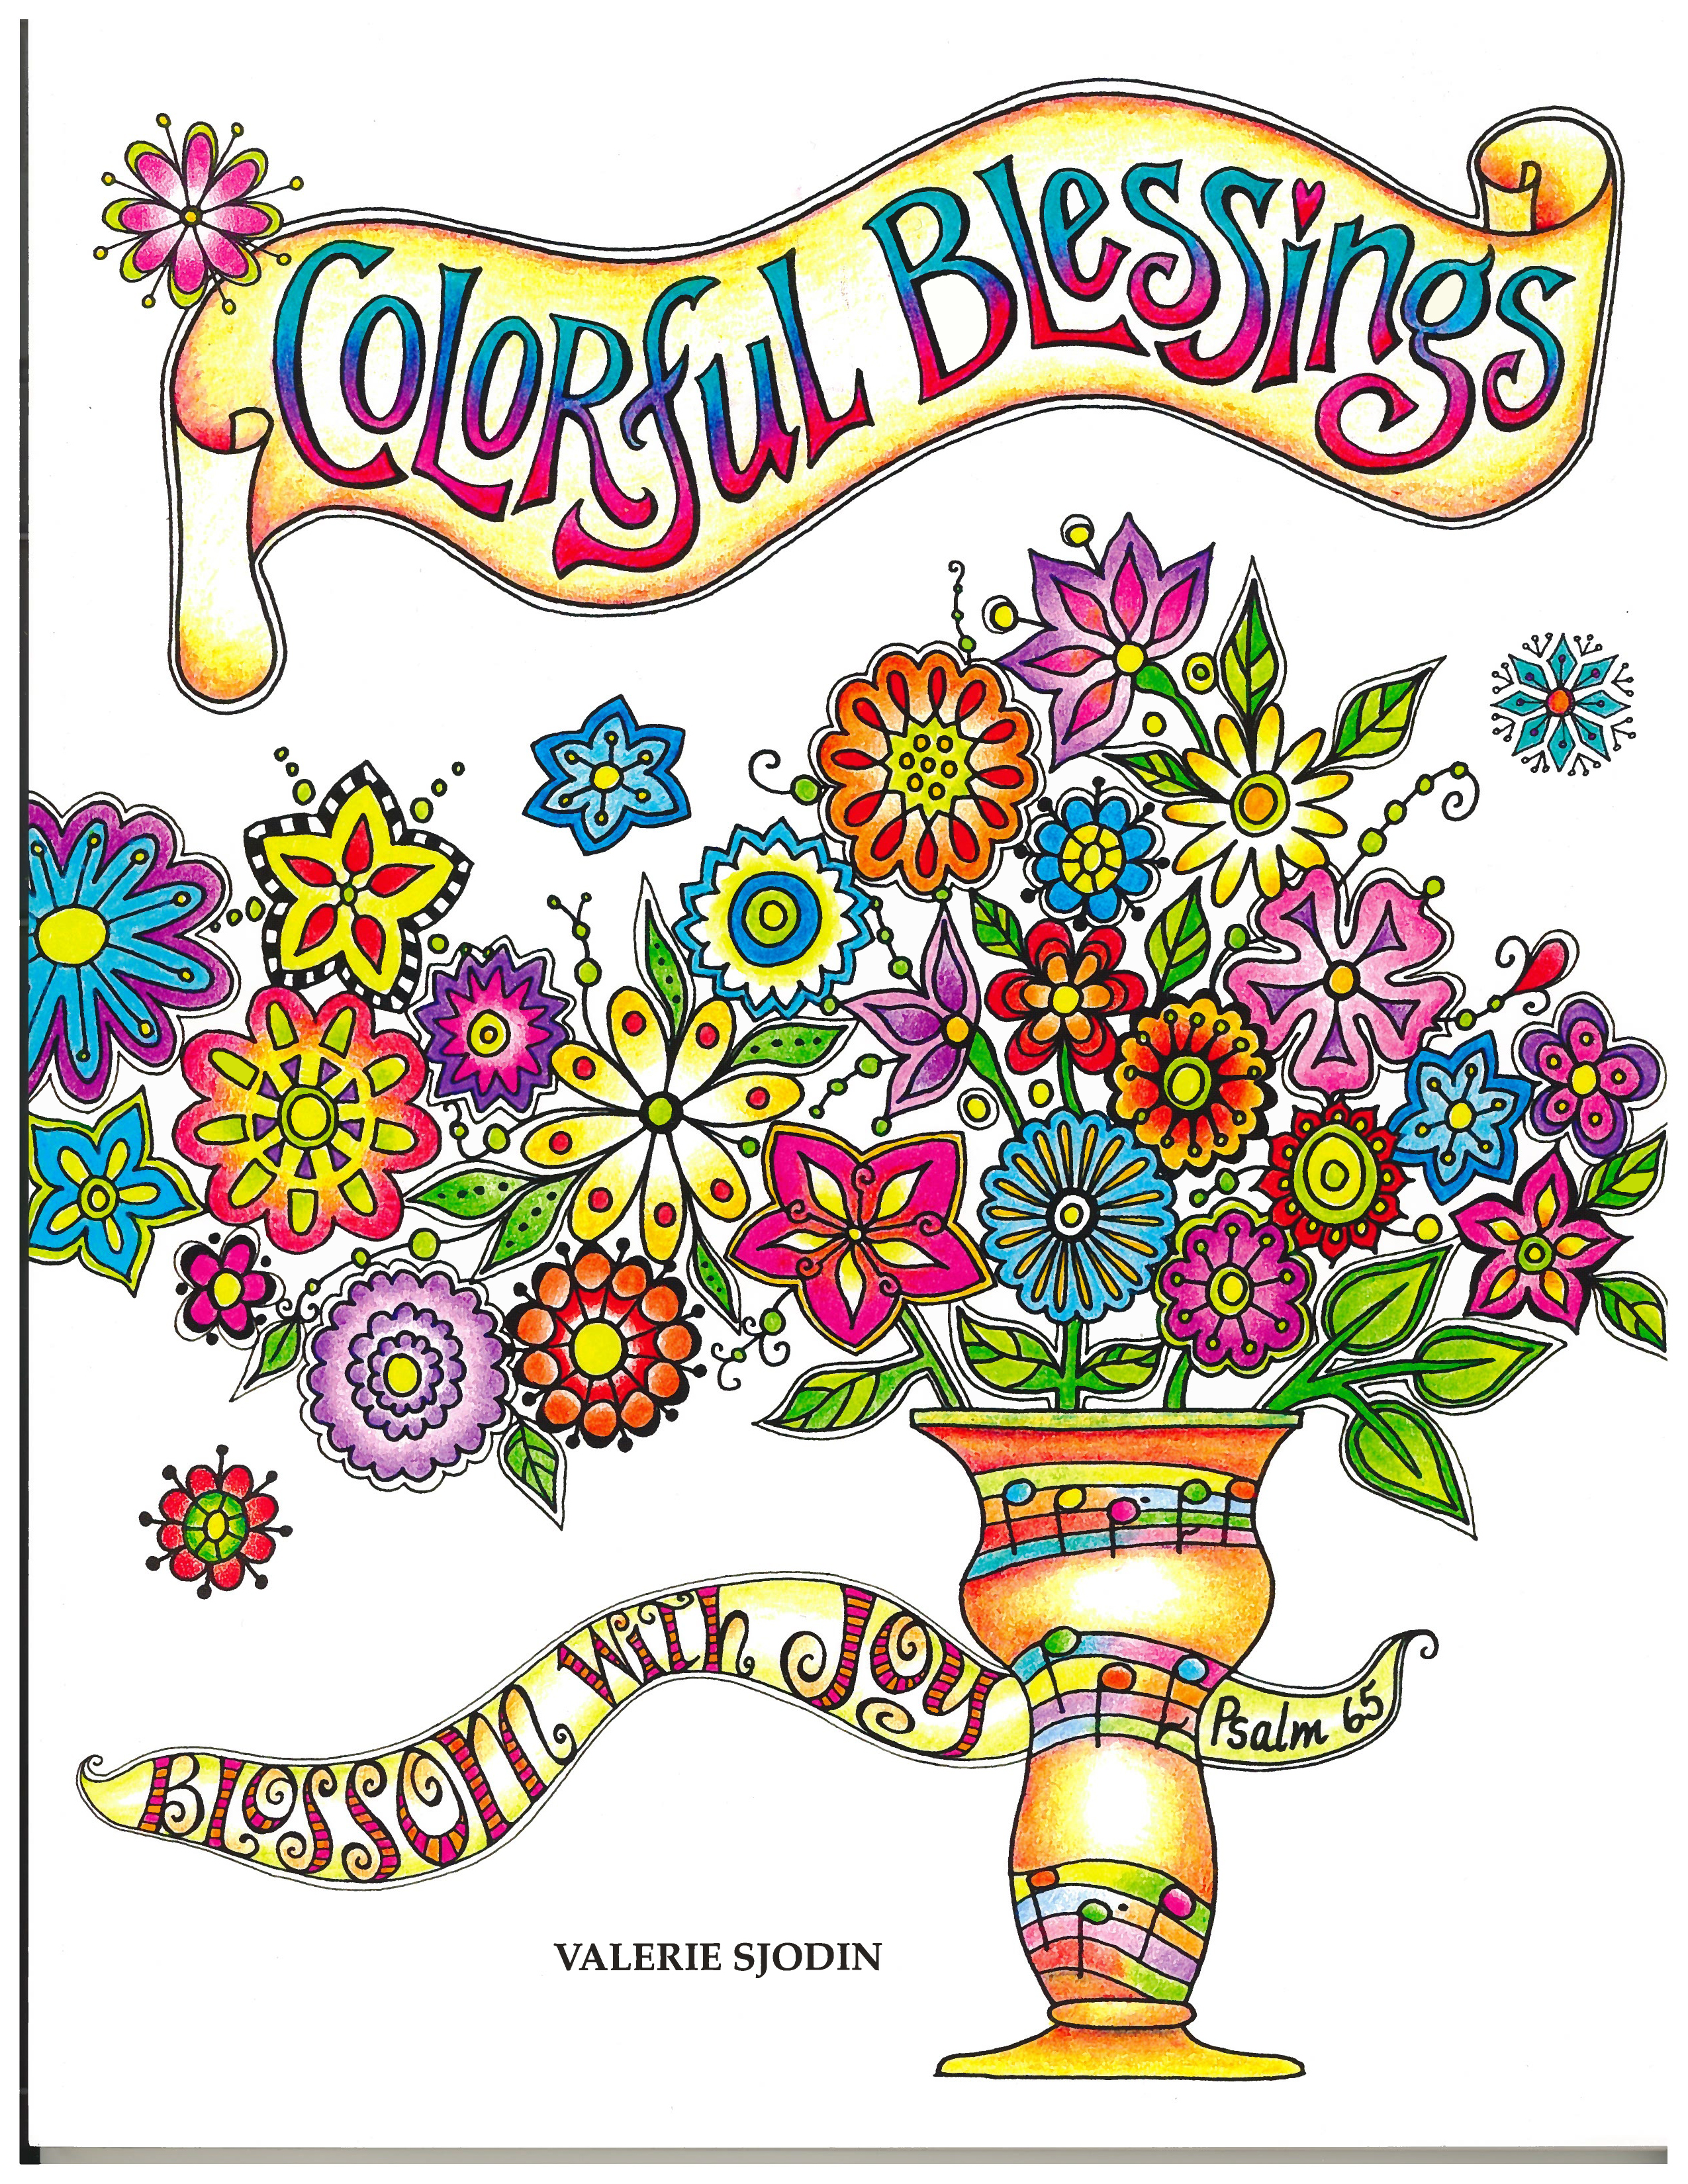 Colorful Blessings by Valerie Sjodin Adult coloring book 9781631866562